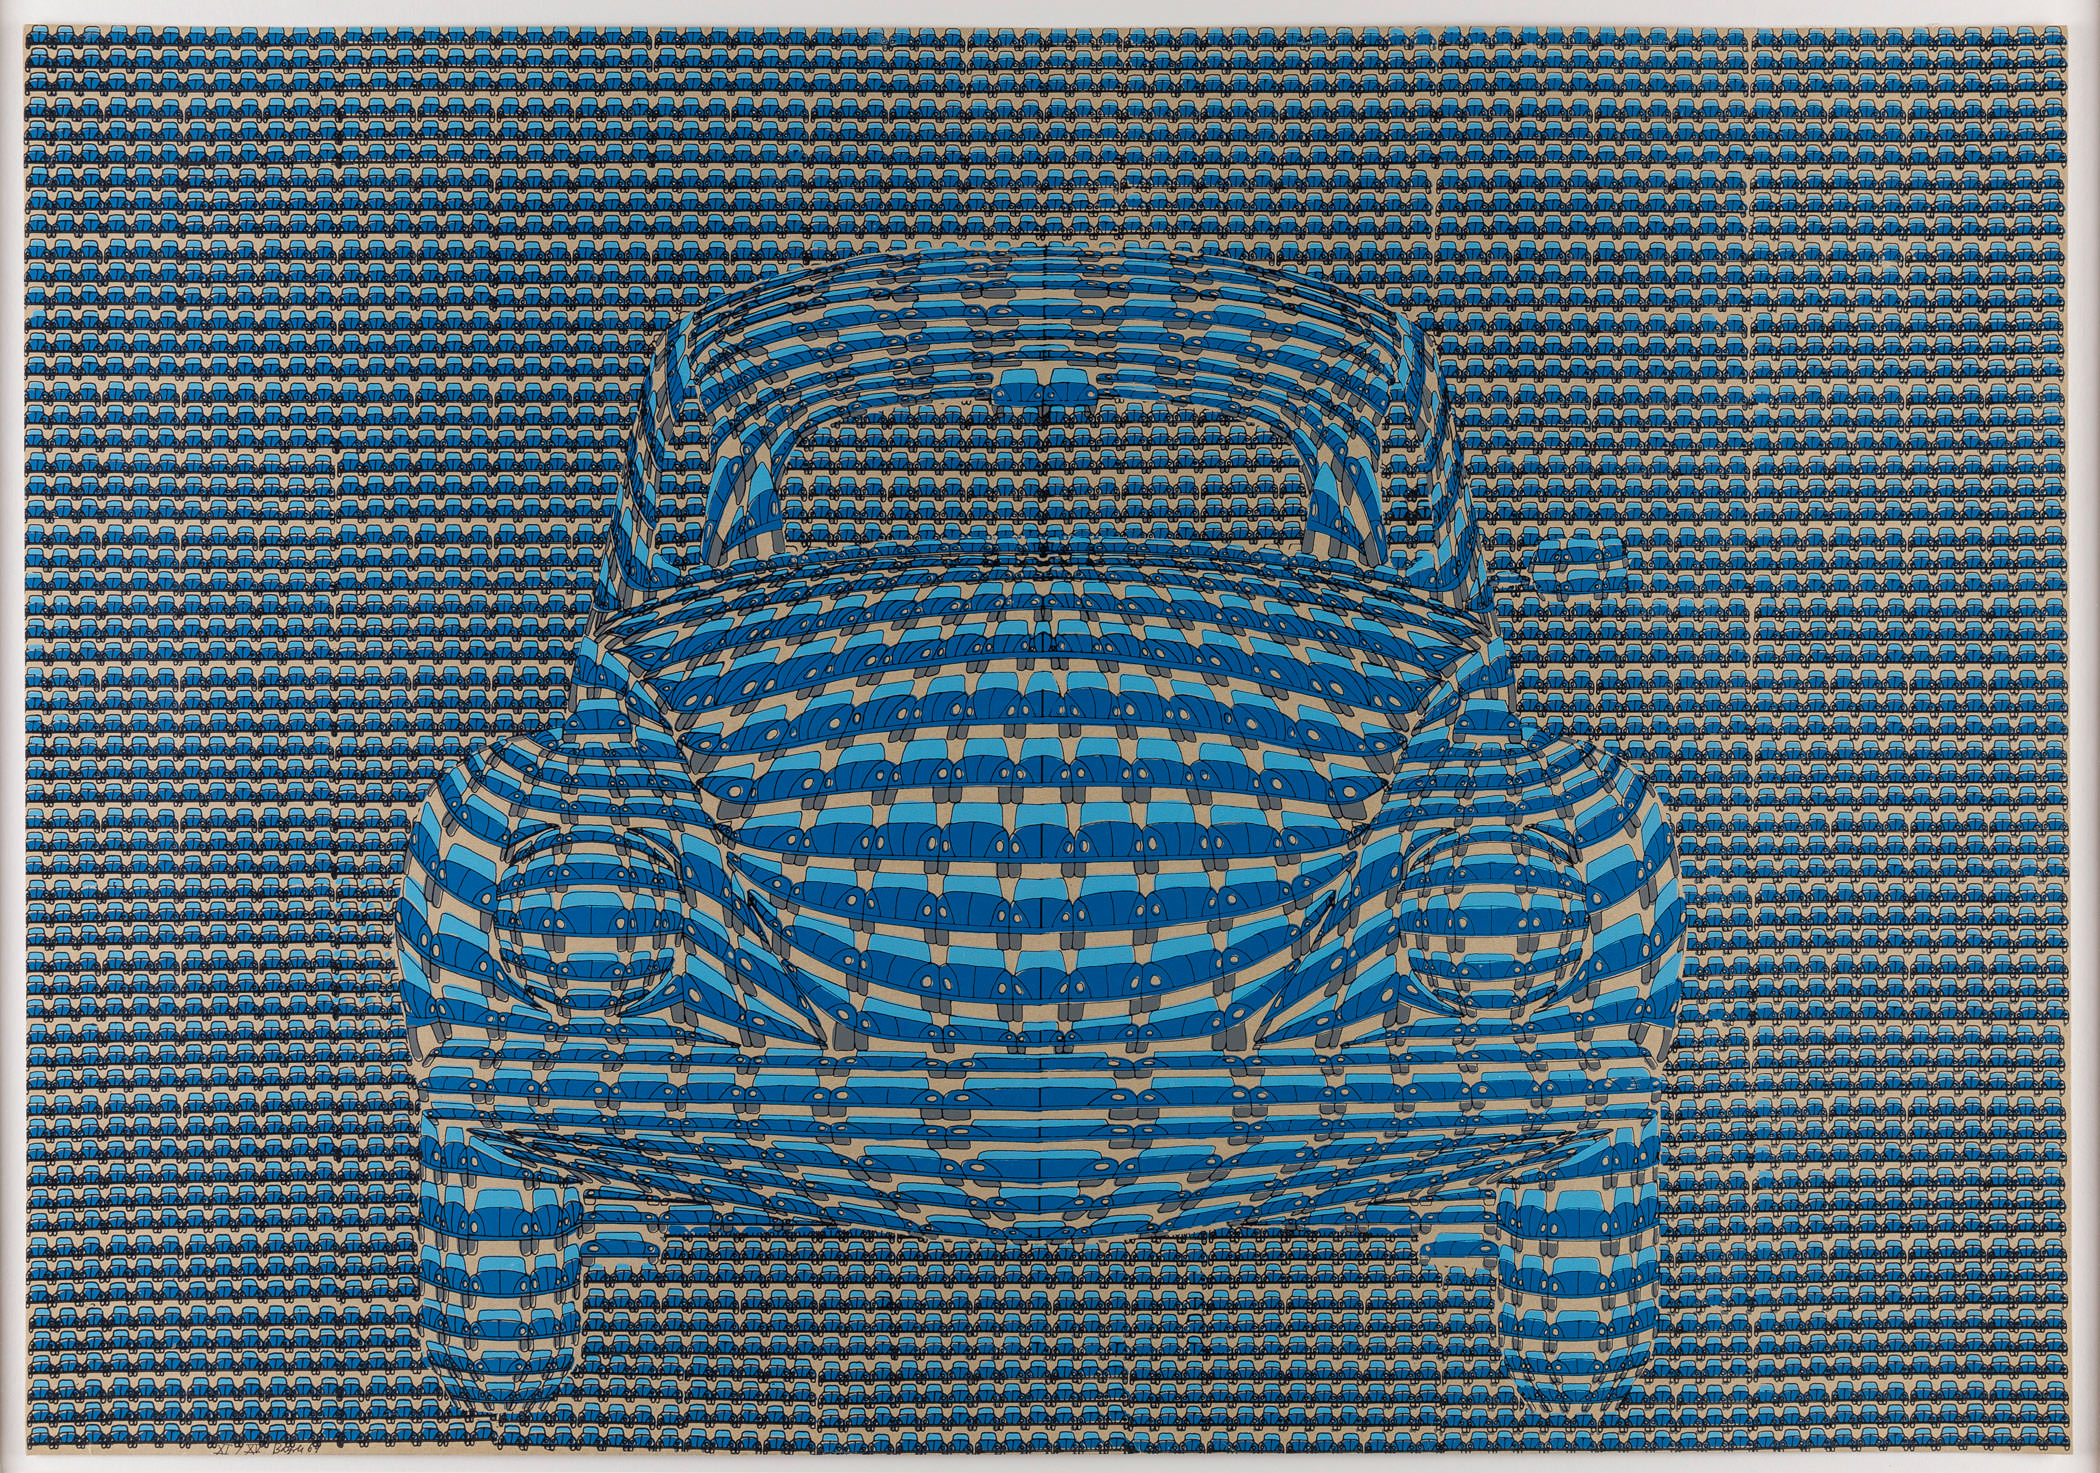 Thomas Bayrle, VW Käfer (VW Beetle), 1969. Screenprint. Courtesy of the Artist, Frankfurt.